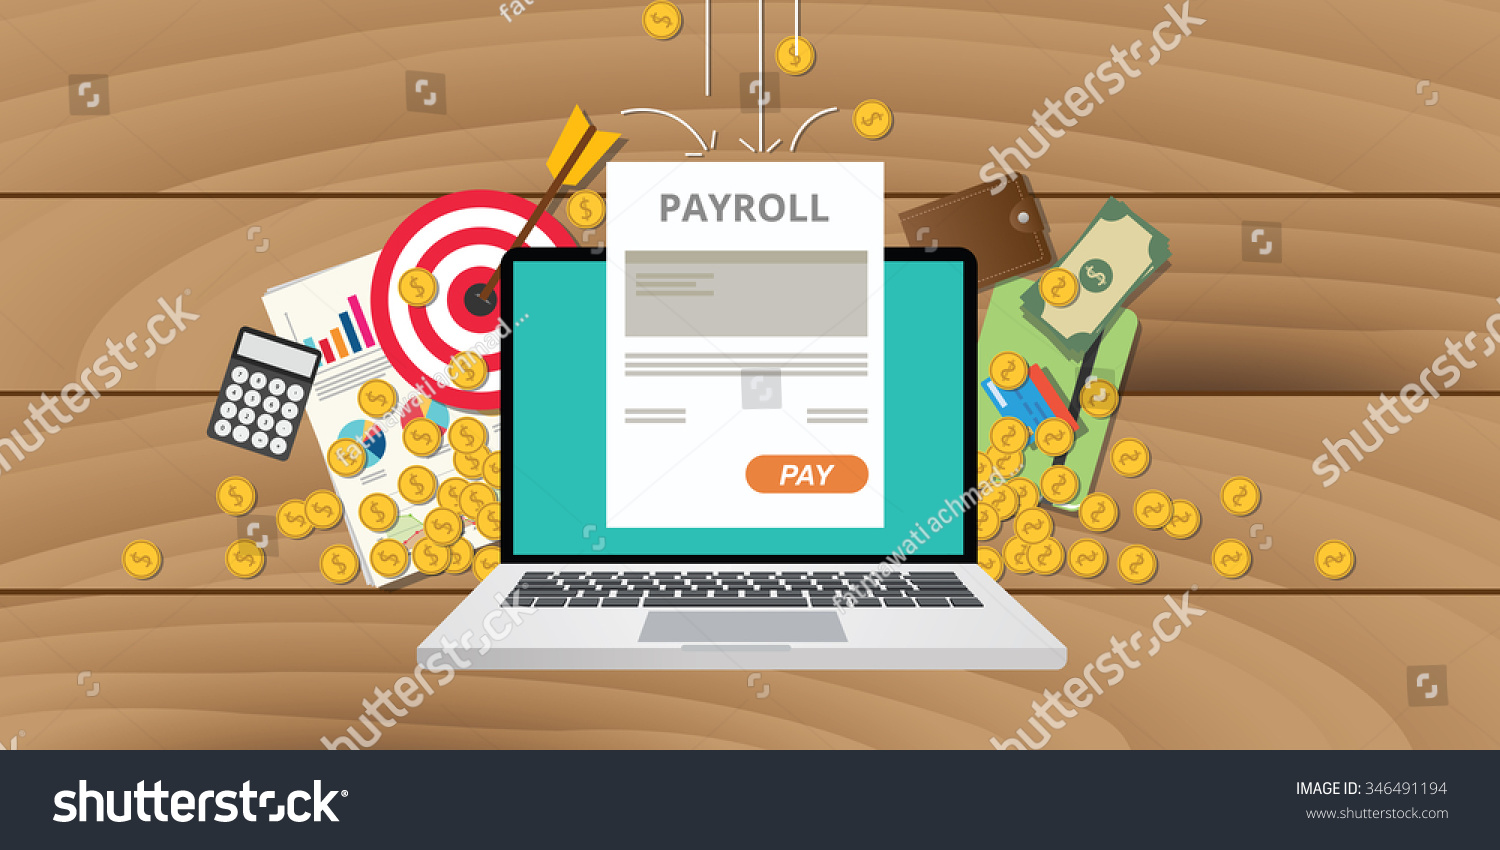 payroll wages money salary calculator accounting stock vector payroll wages money salary calculator accounting icon